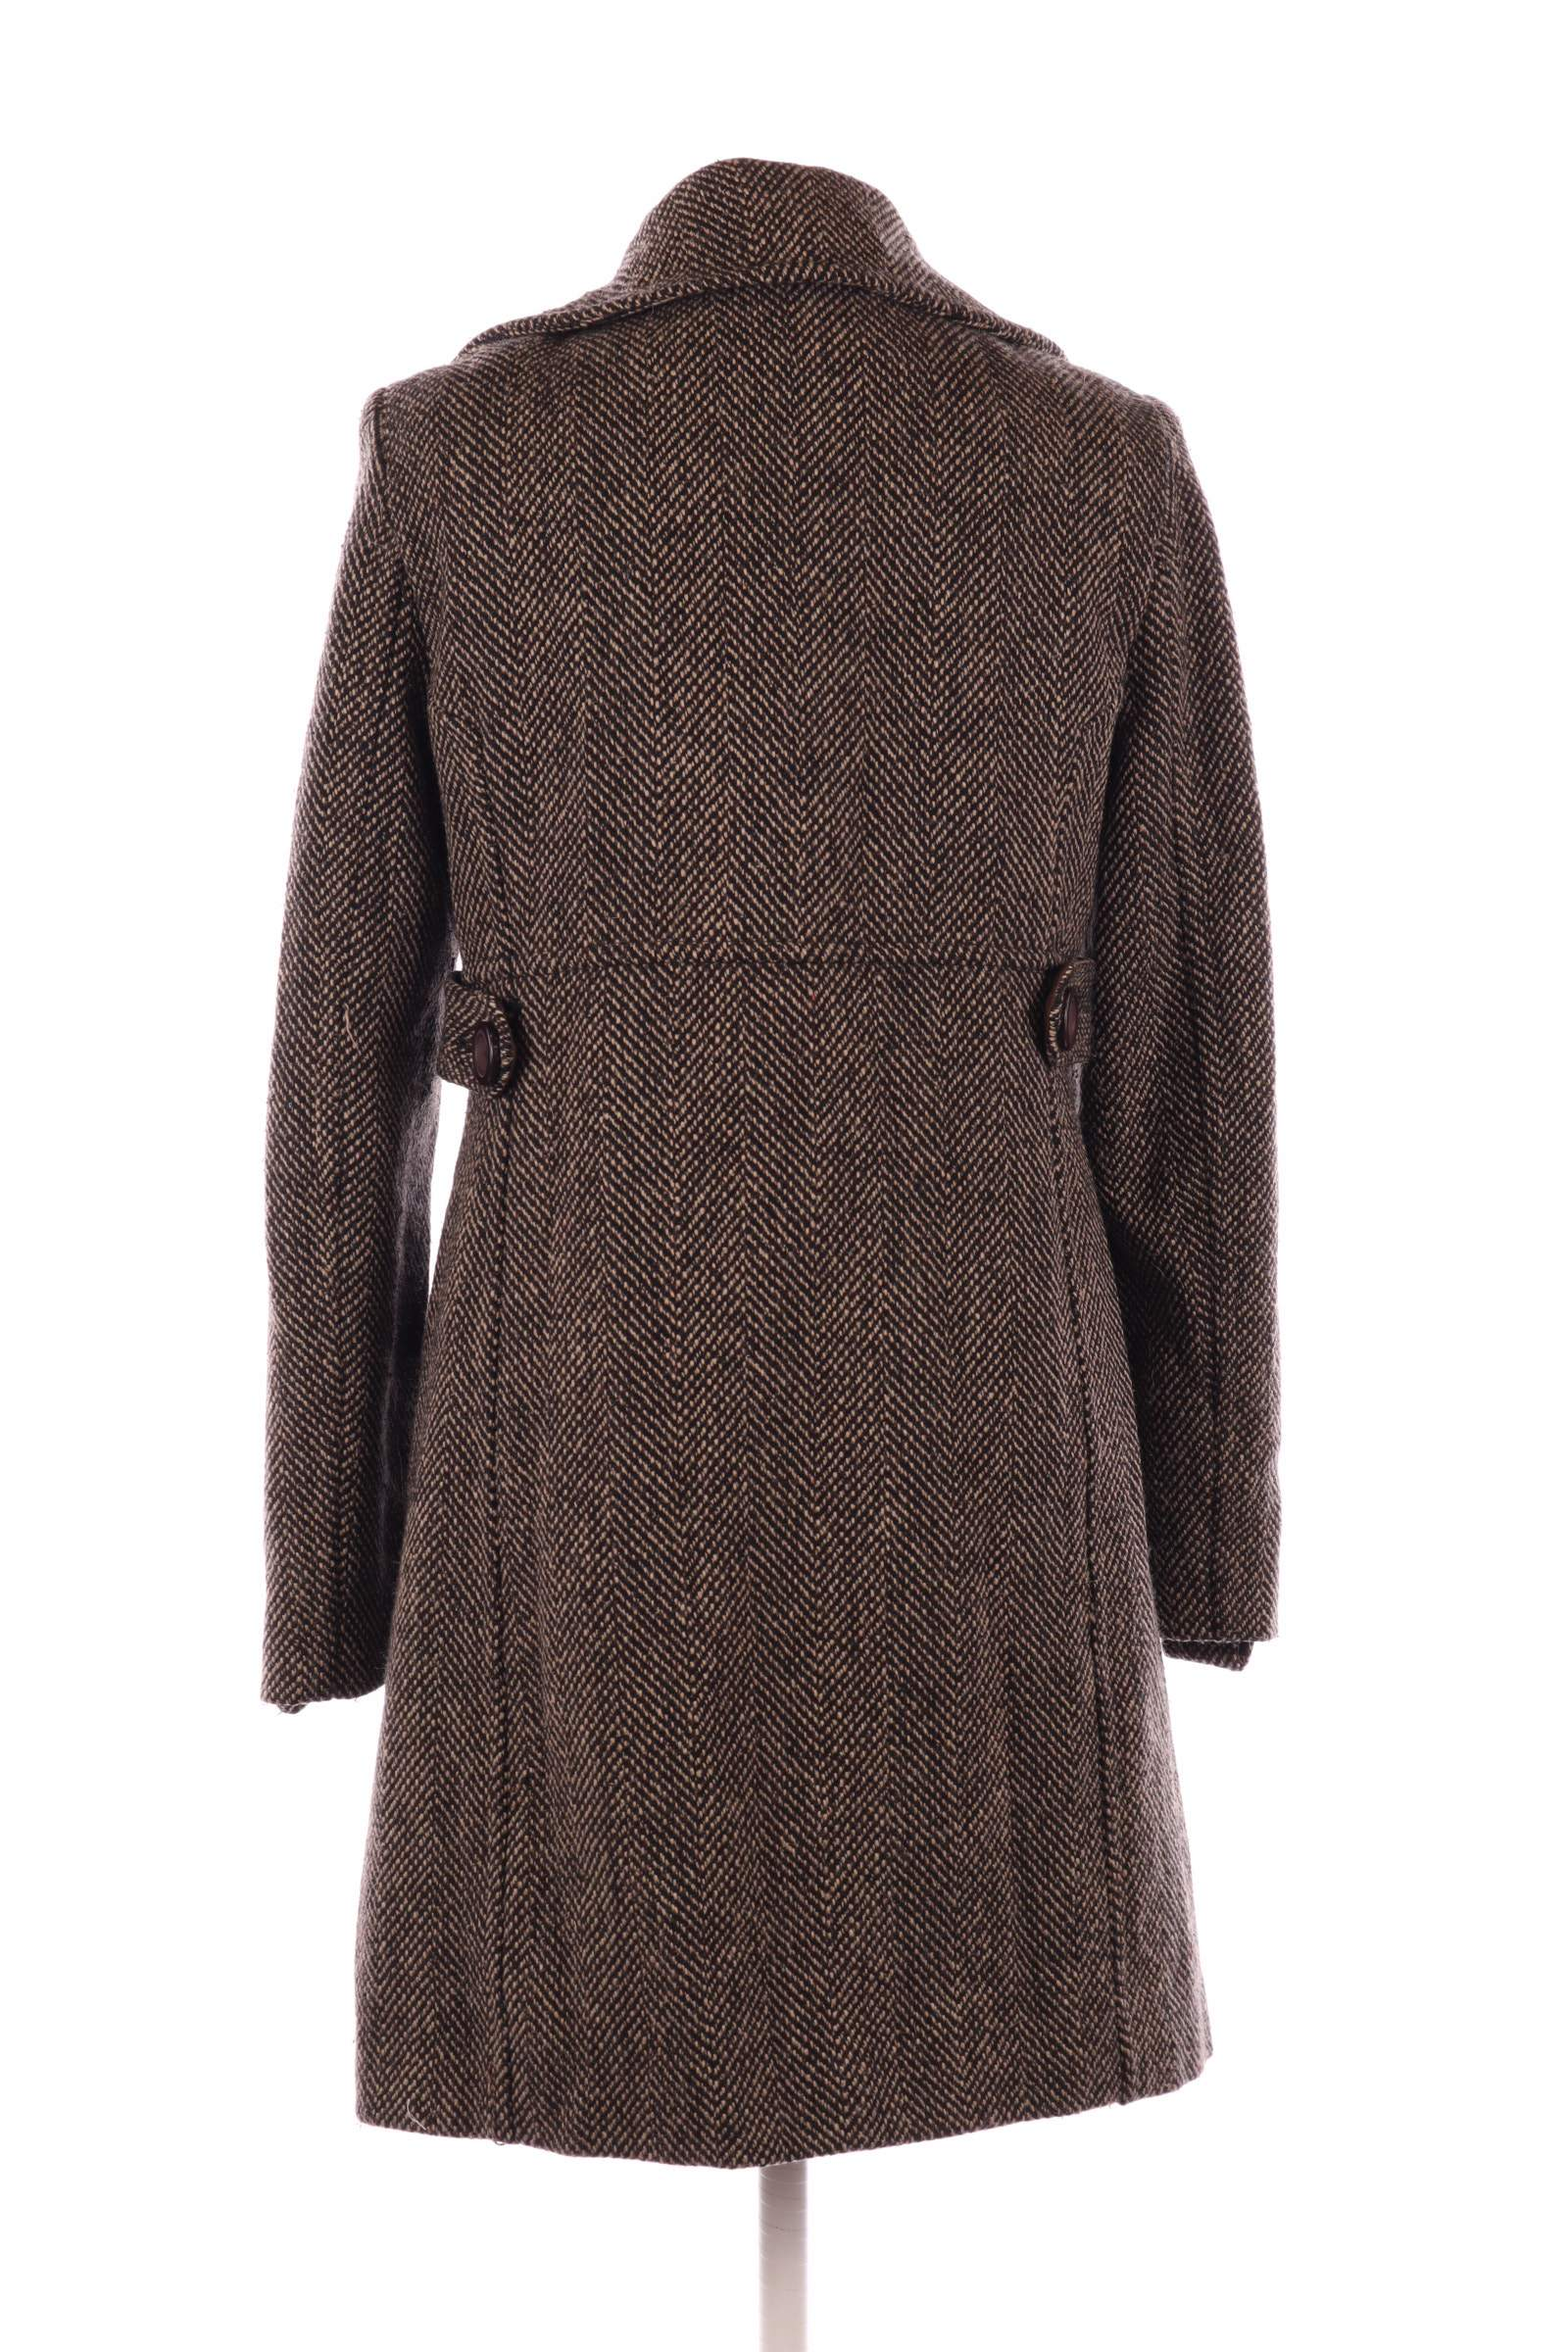 Seppälä Brown Coat - upty.store